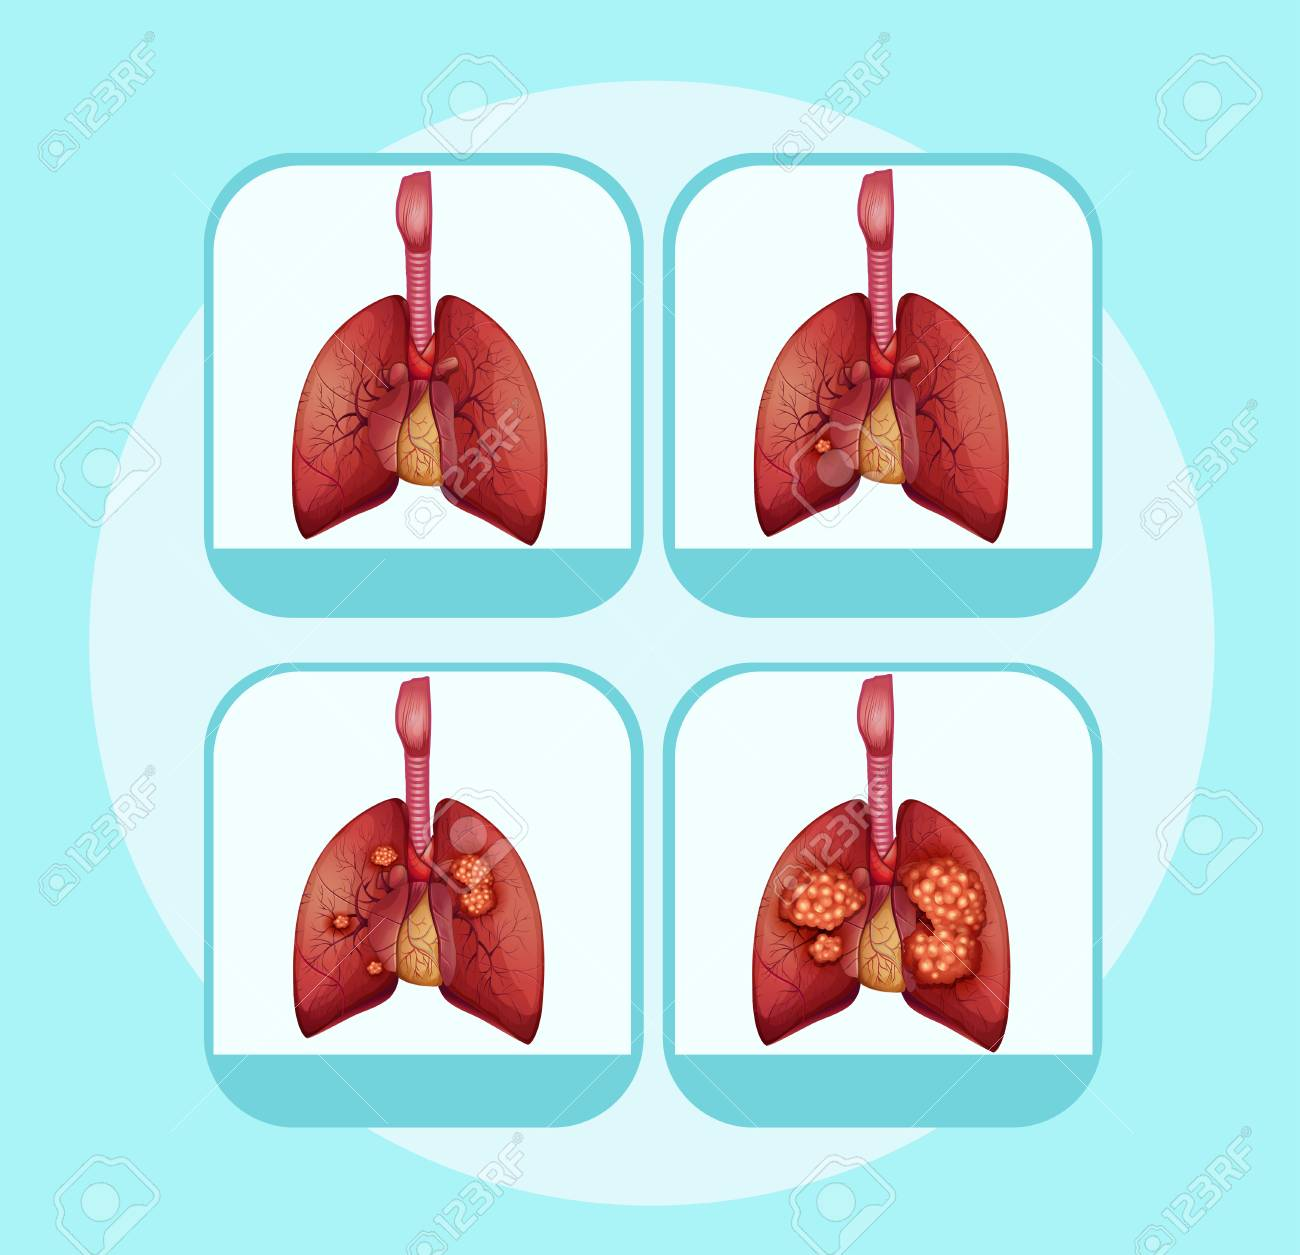 hight resolution of diagram showing different stages of lung cancer illustration stock vector 96927029